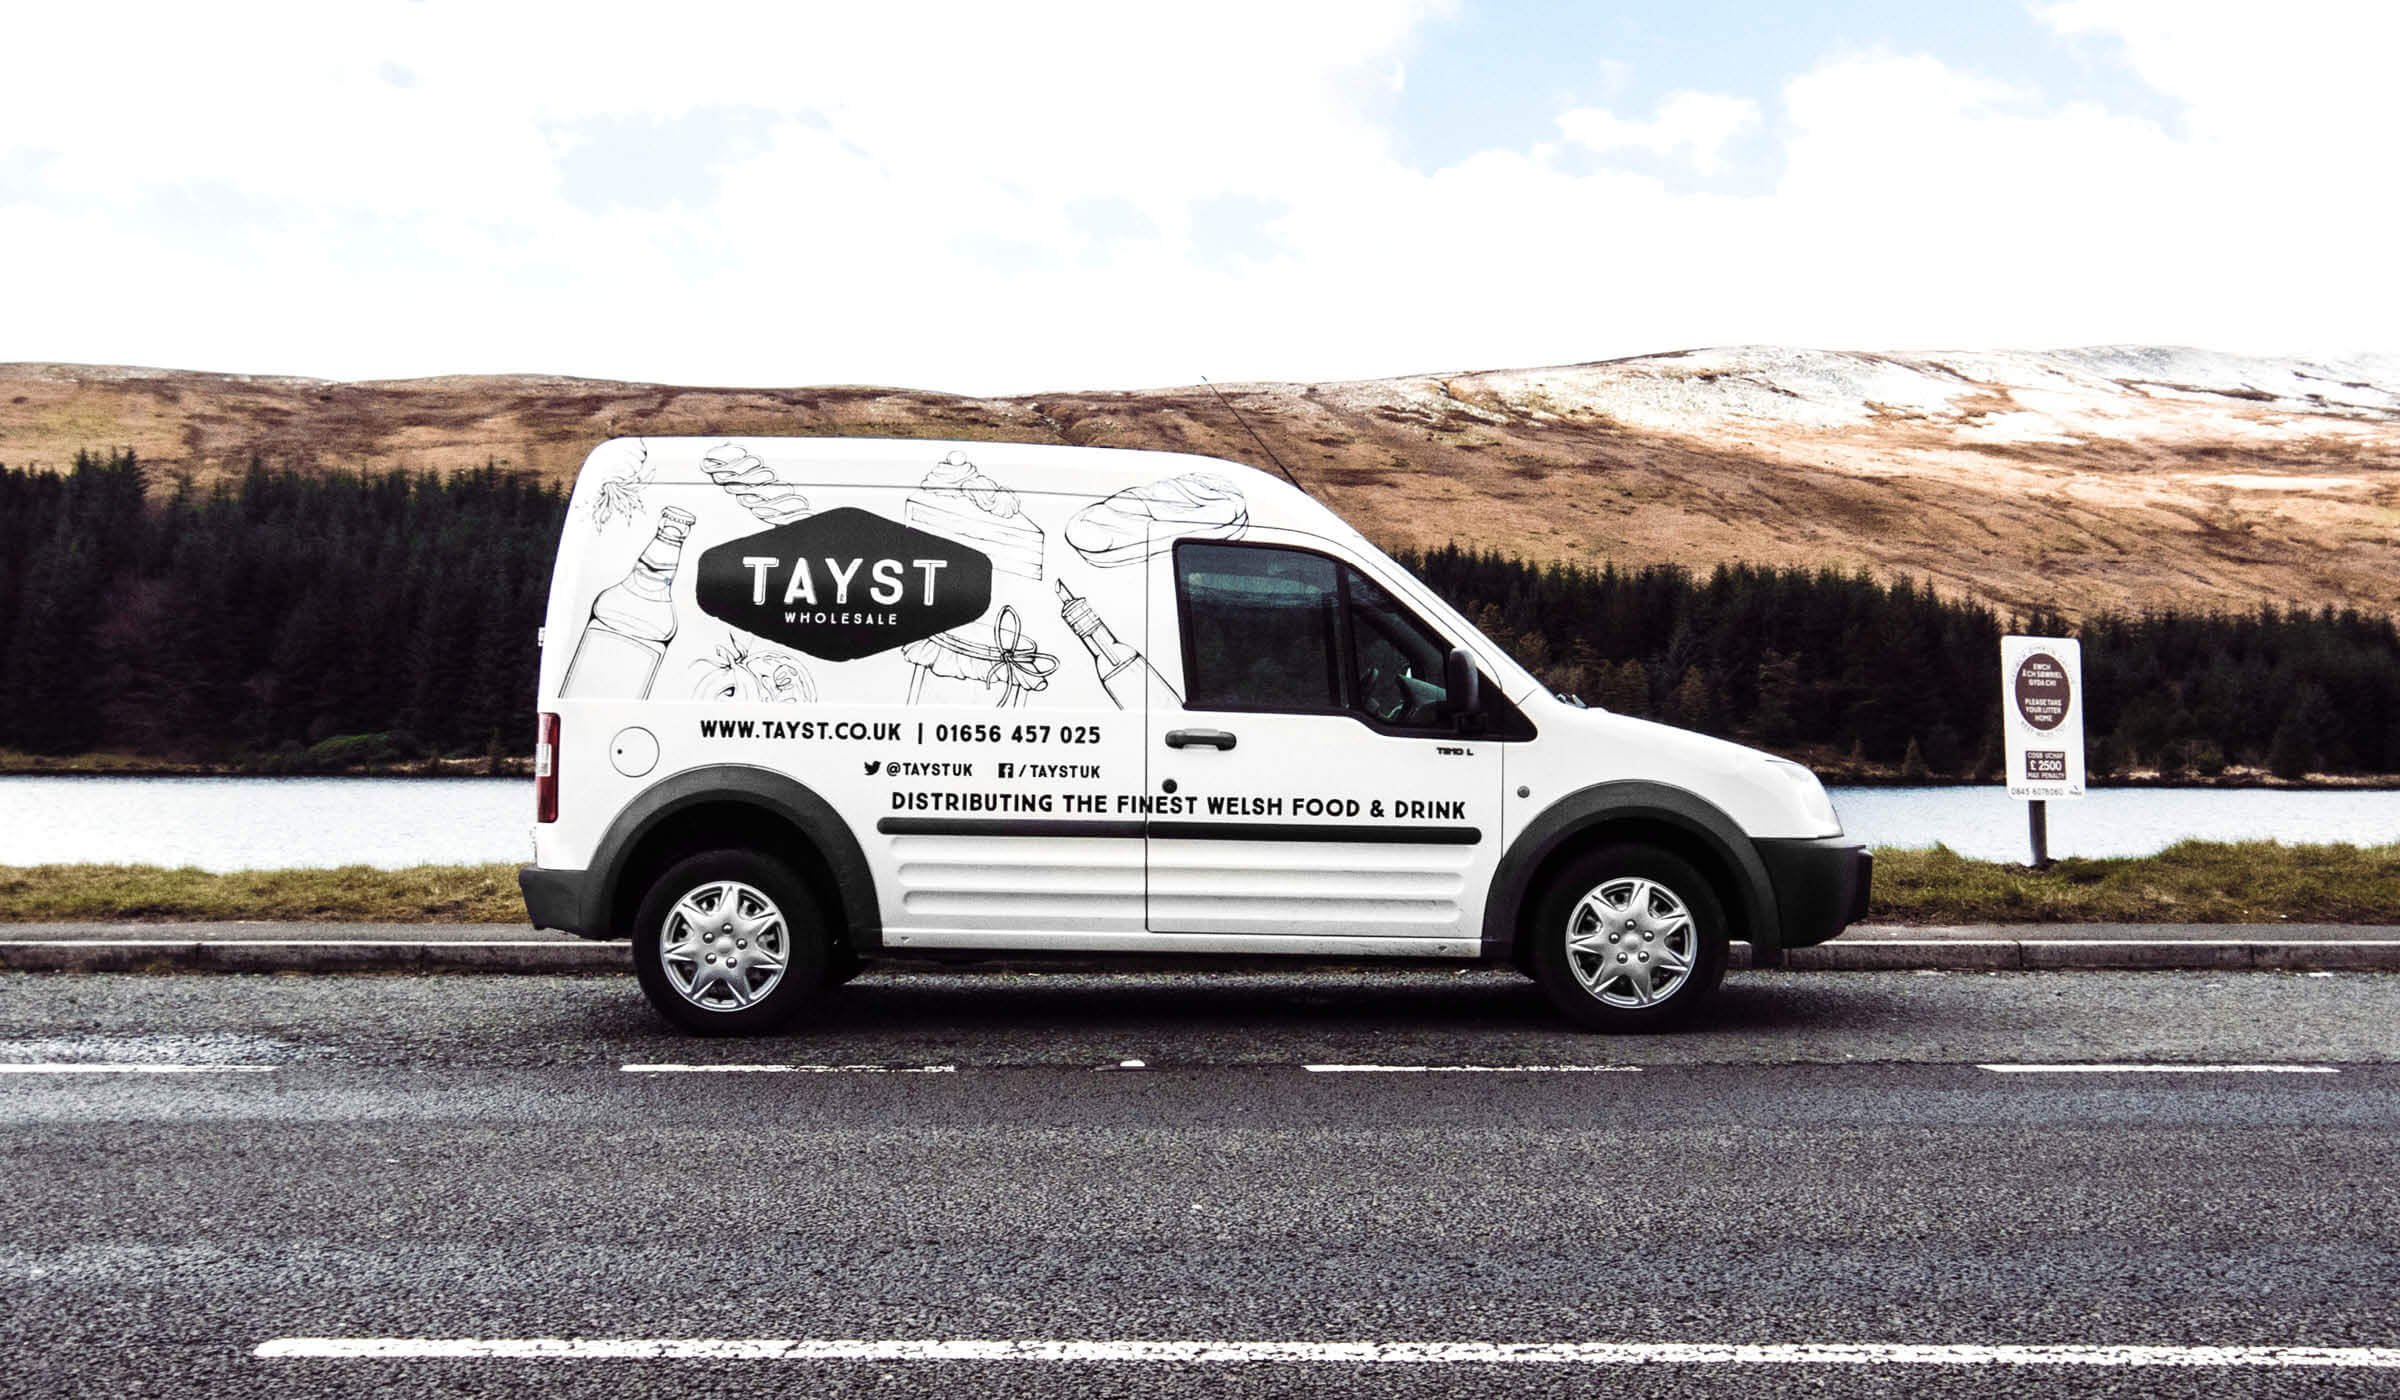 illustrated van decal for food and drink wholesaler in Wales